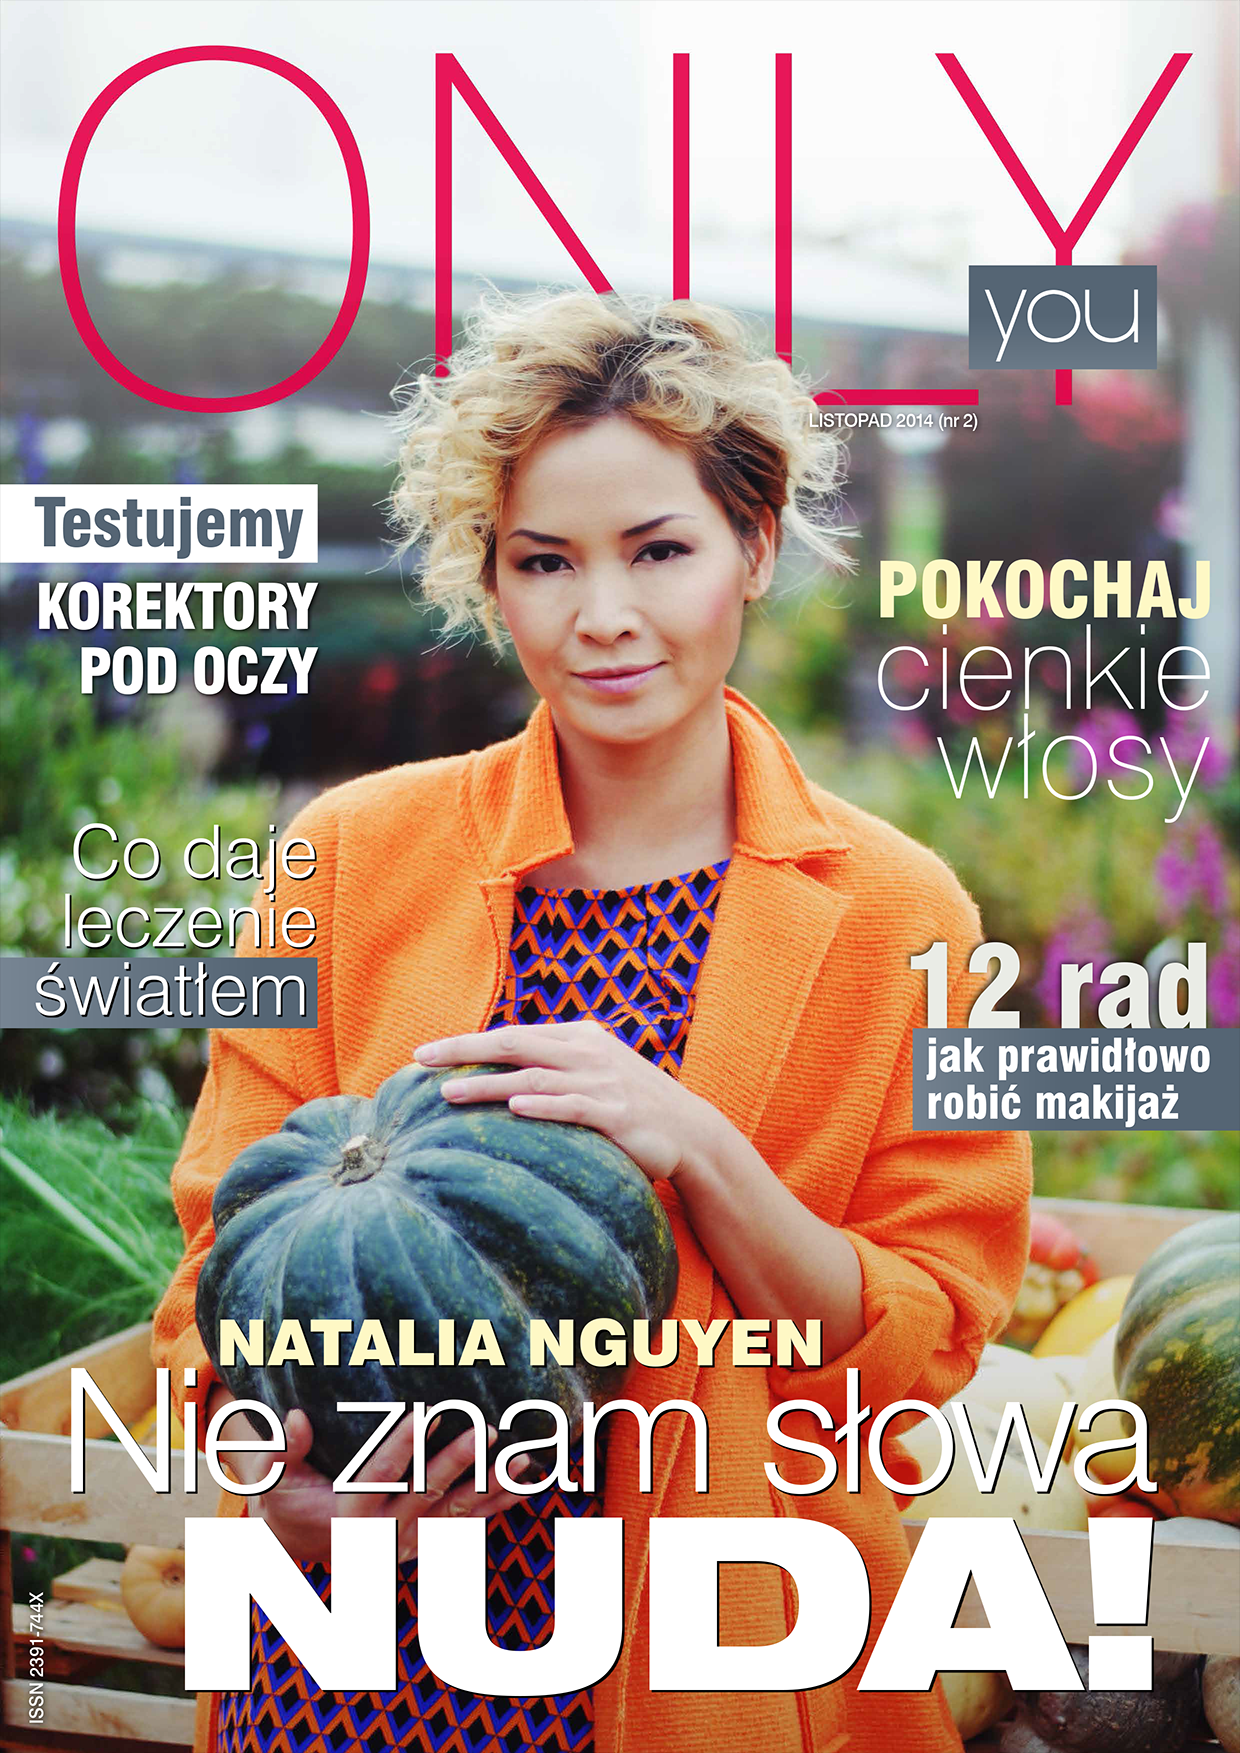 ONLY YOU NR 2/2014